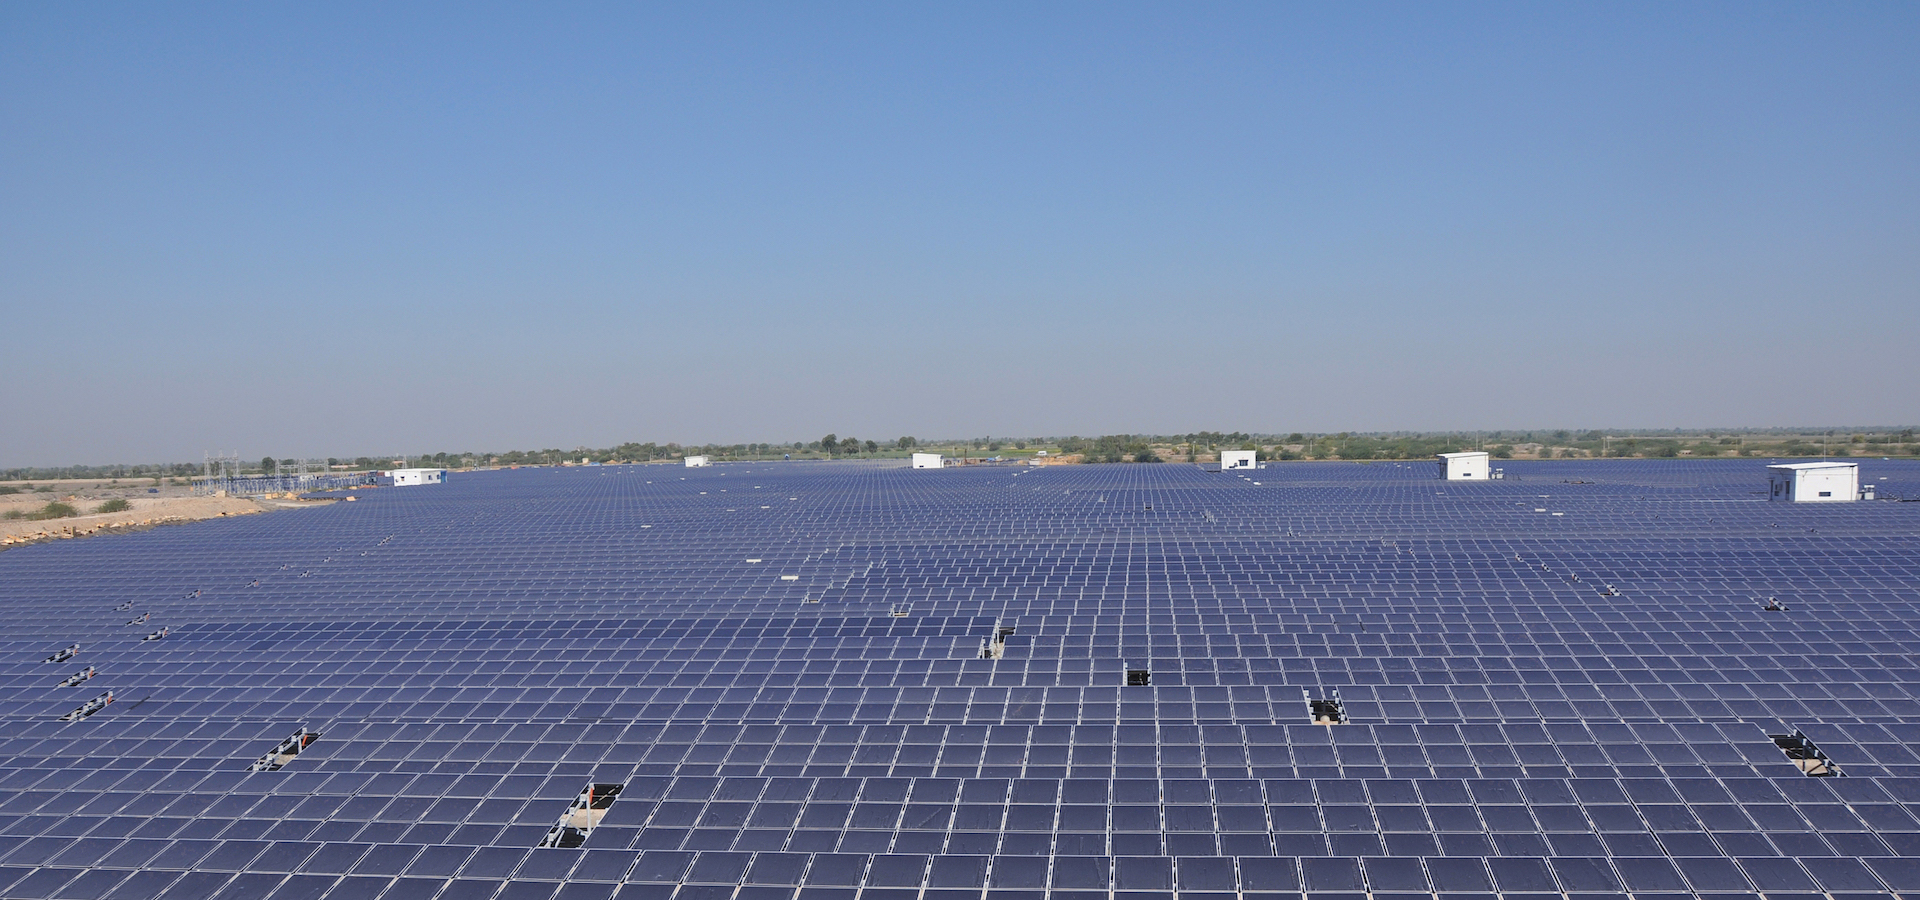 large field of solar panels with blue sky behind